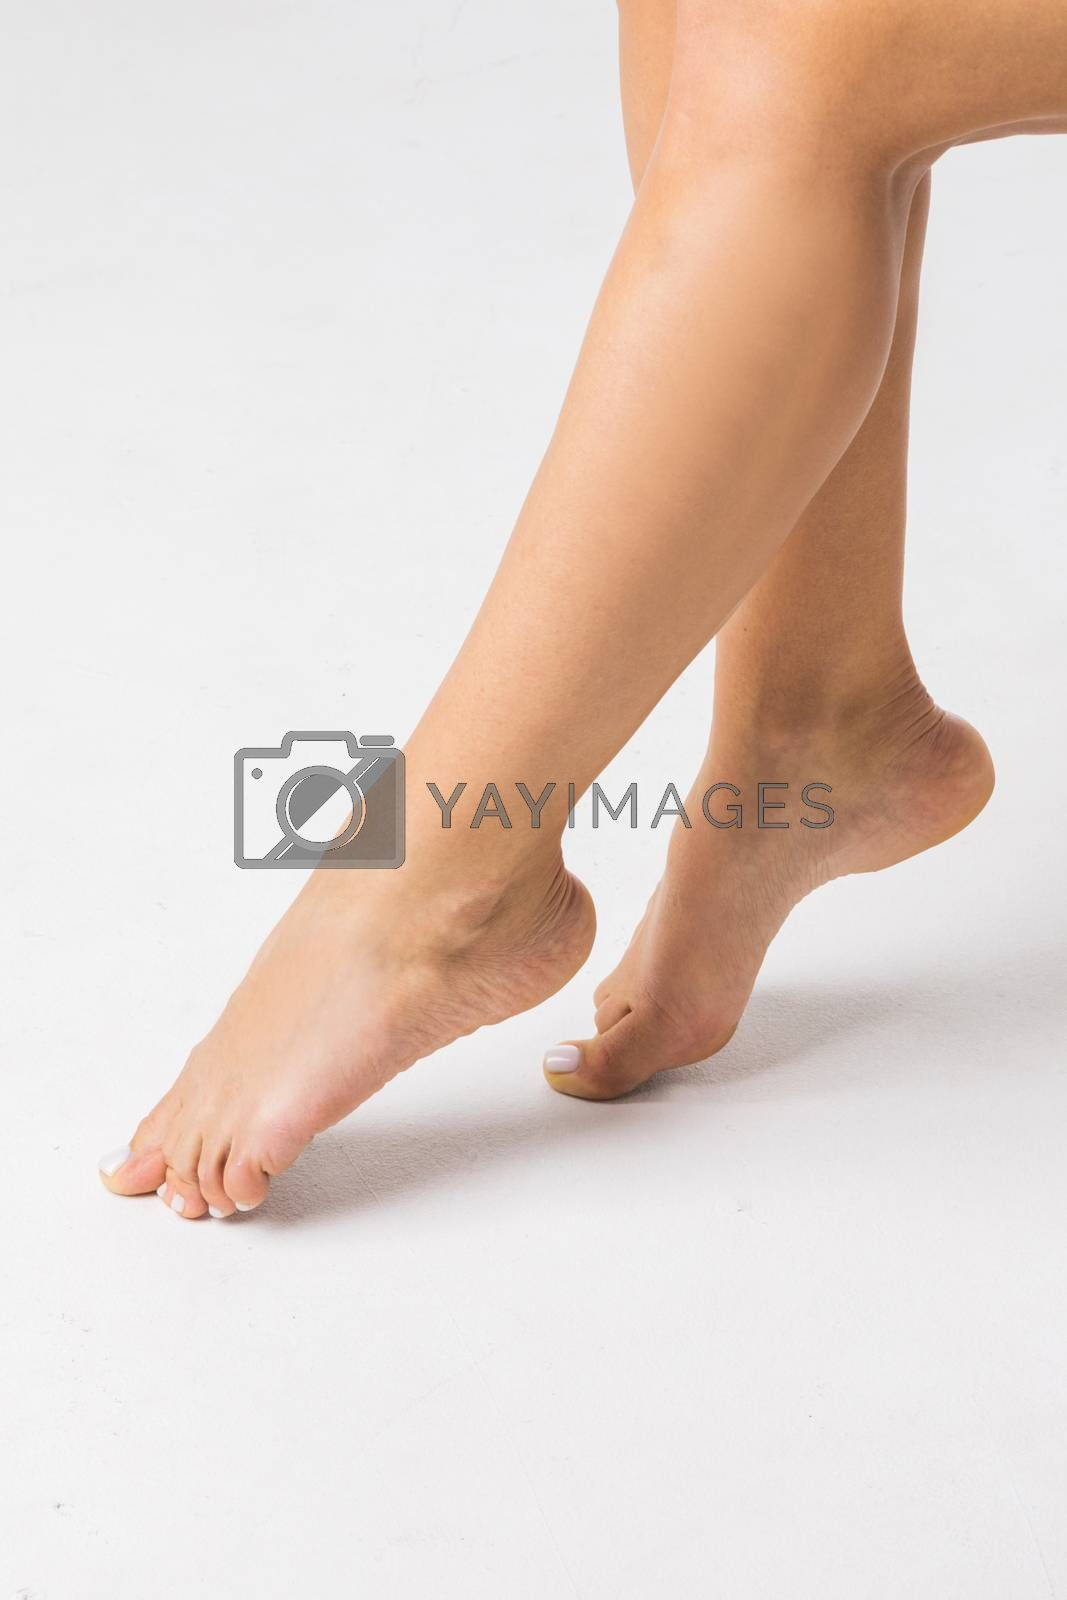 Young woman with perfect body is sitting with smooth silky legs after depilaton on a white background.Concept of depilation, smooth skin, skincare, cosmetics, wellness center,healthy lifestyle